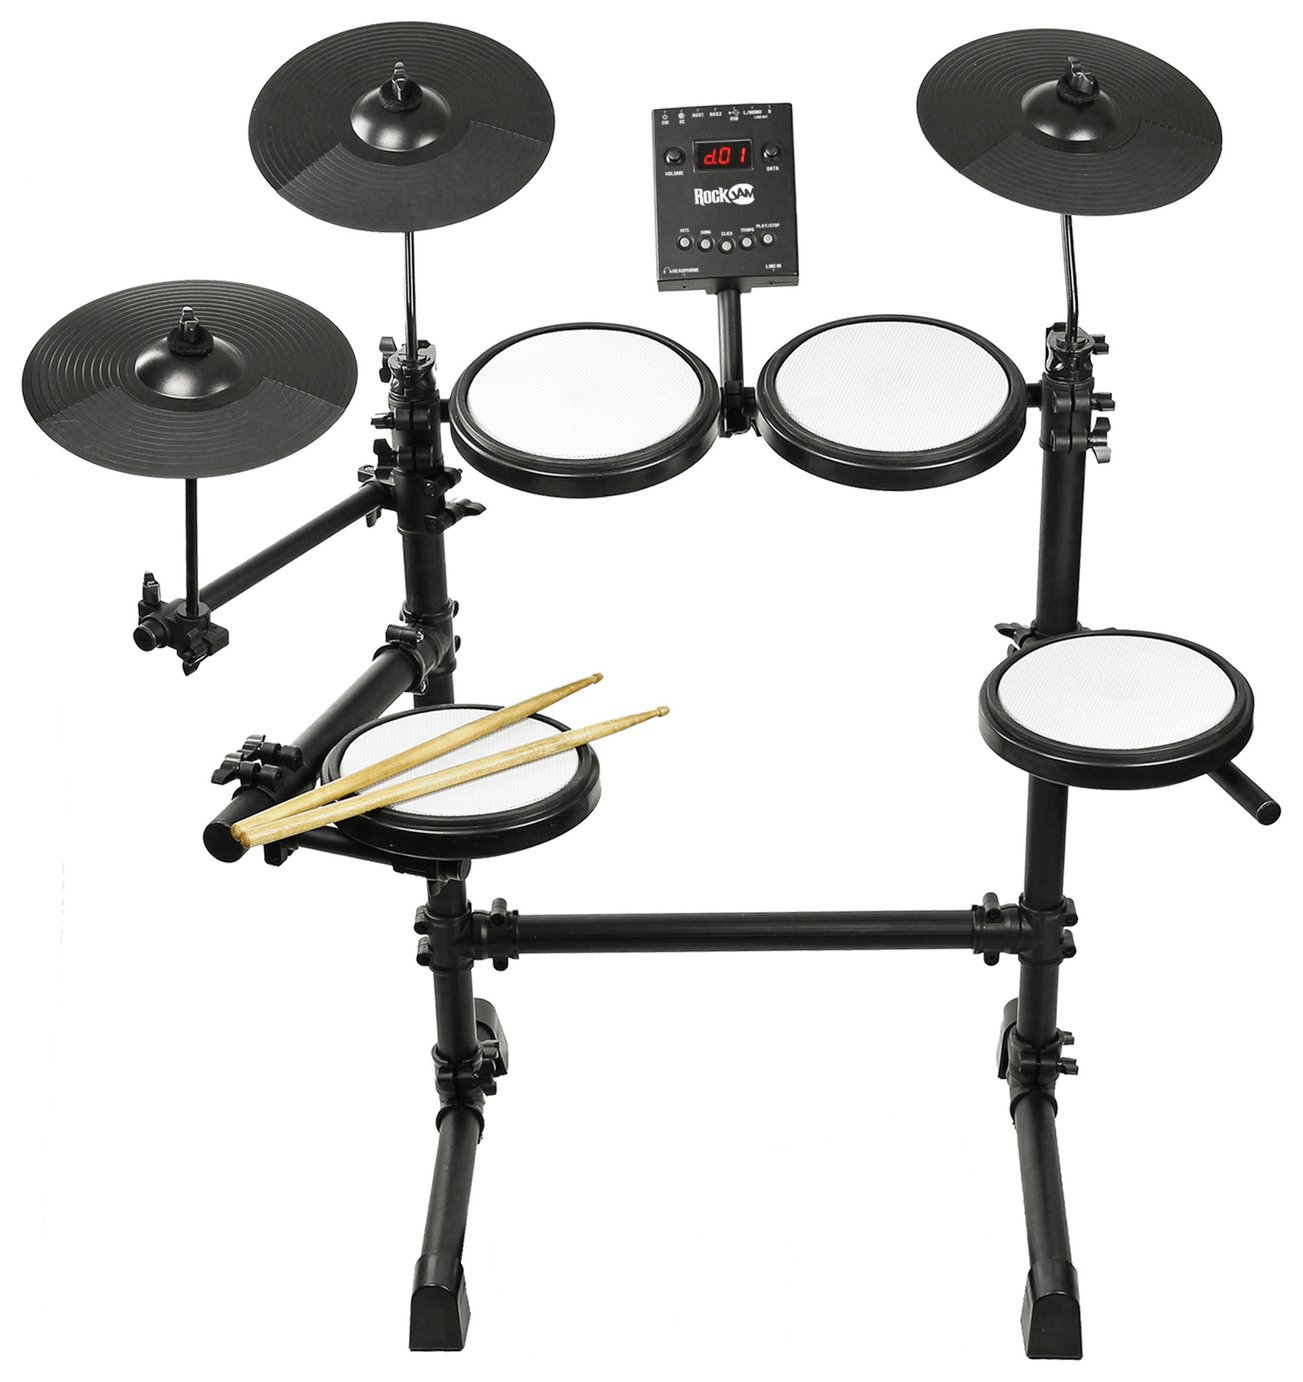 RockJam Mesh Head Digital Drum Kit With Drum Sticks